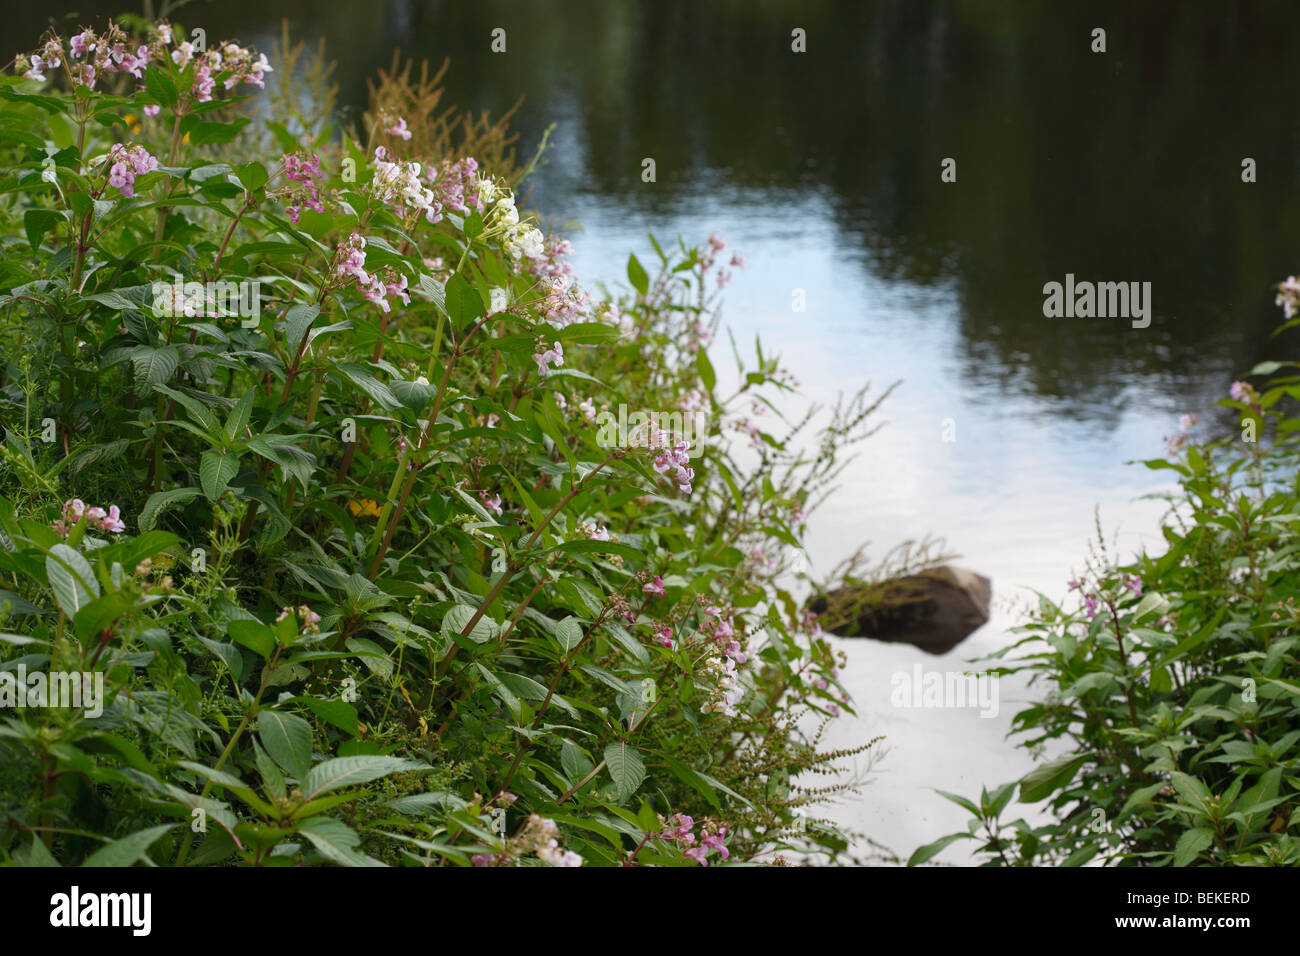 Indian balsam(impatiens glandulifera) growing on river bank Stock Photo